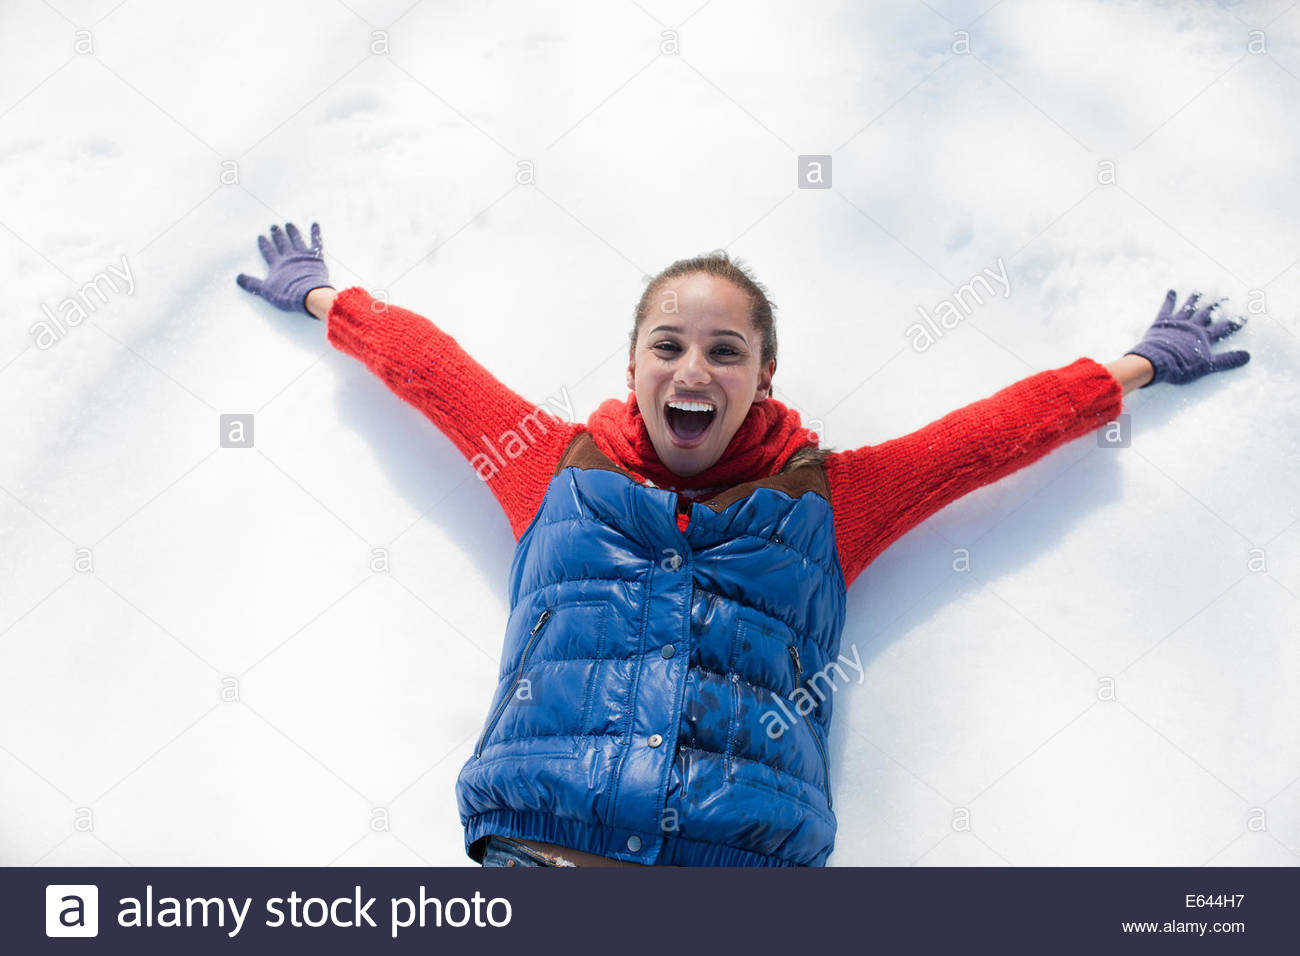 Smiling woman making snow angels - Stock Image